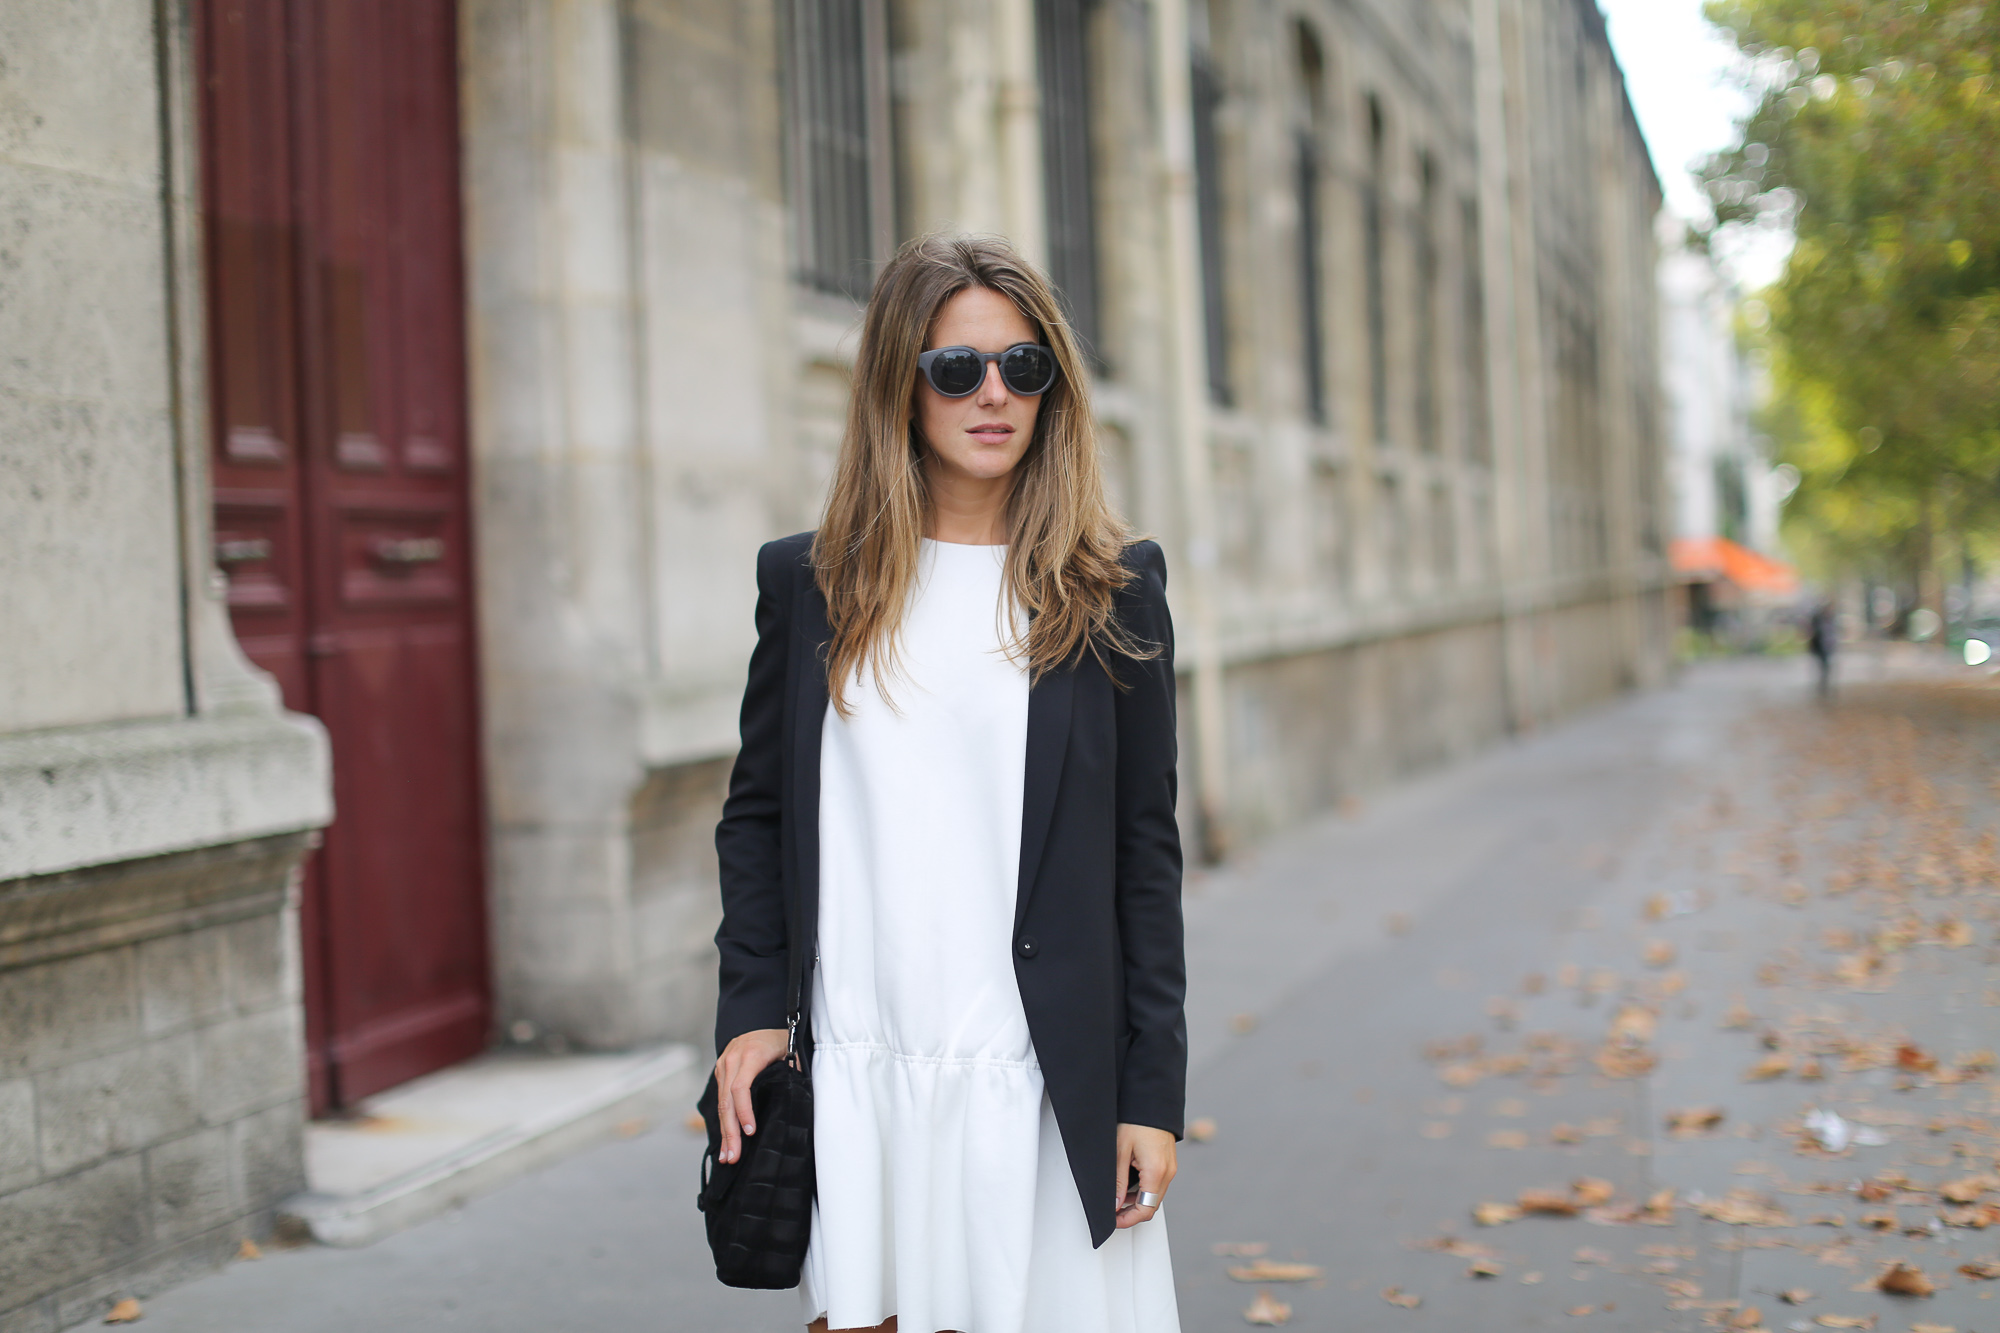 Clochet_paris_h&m_trend_white_neoprene_dress_adidas_stan_smith-1